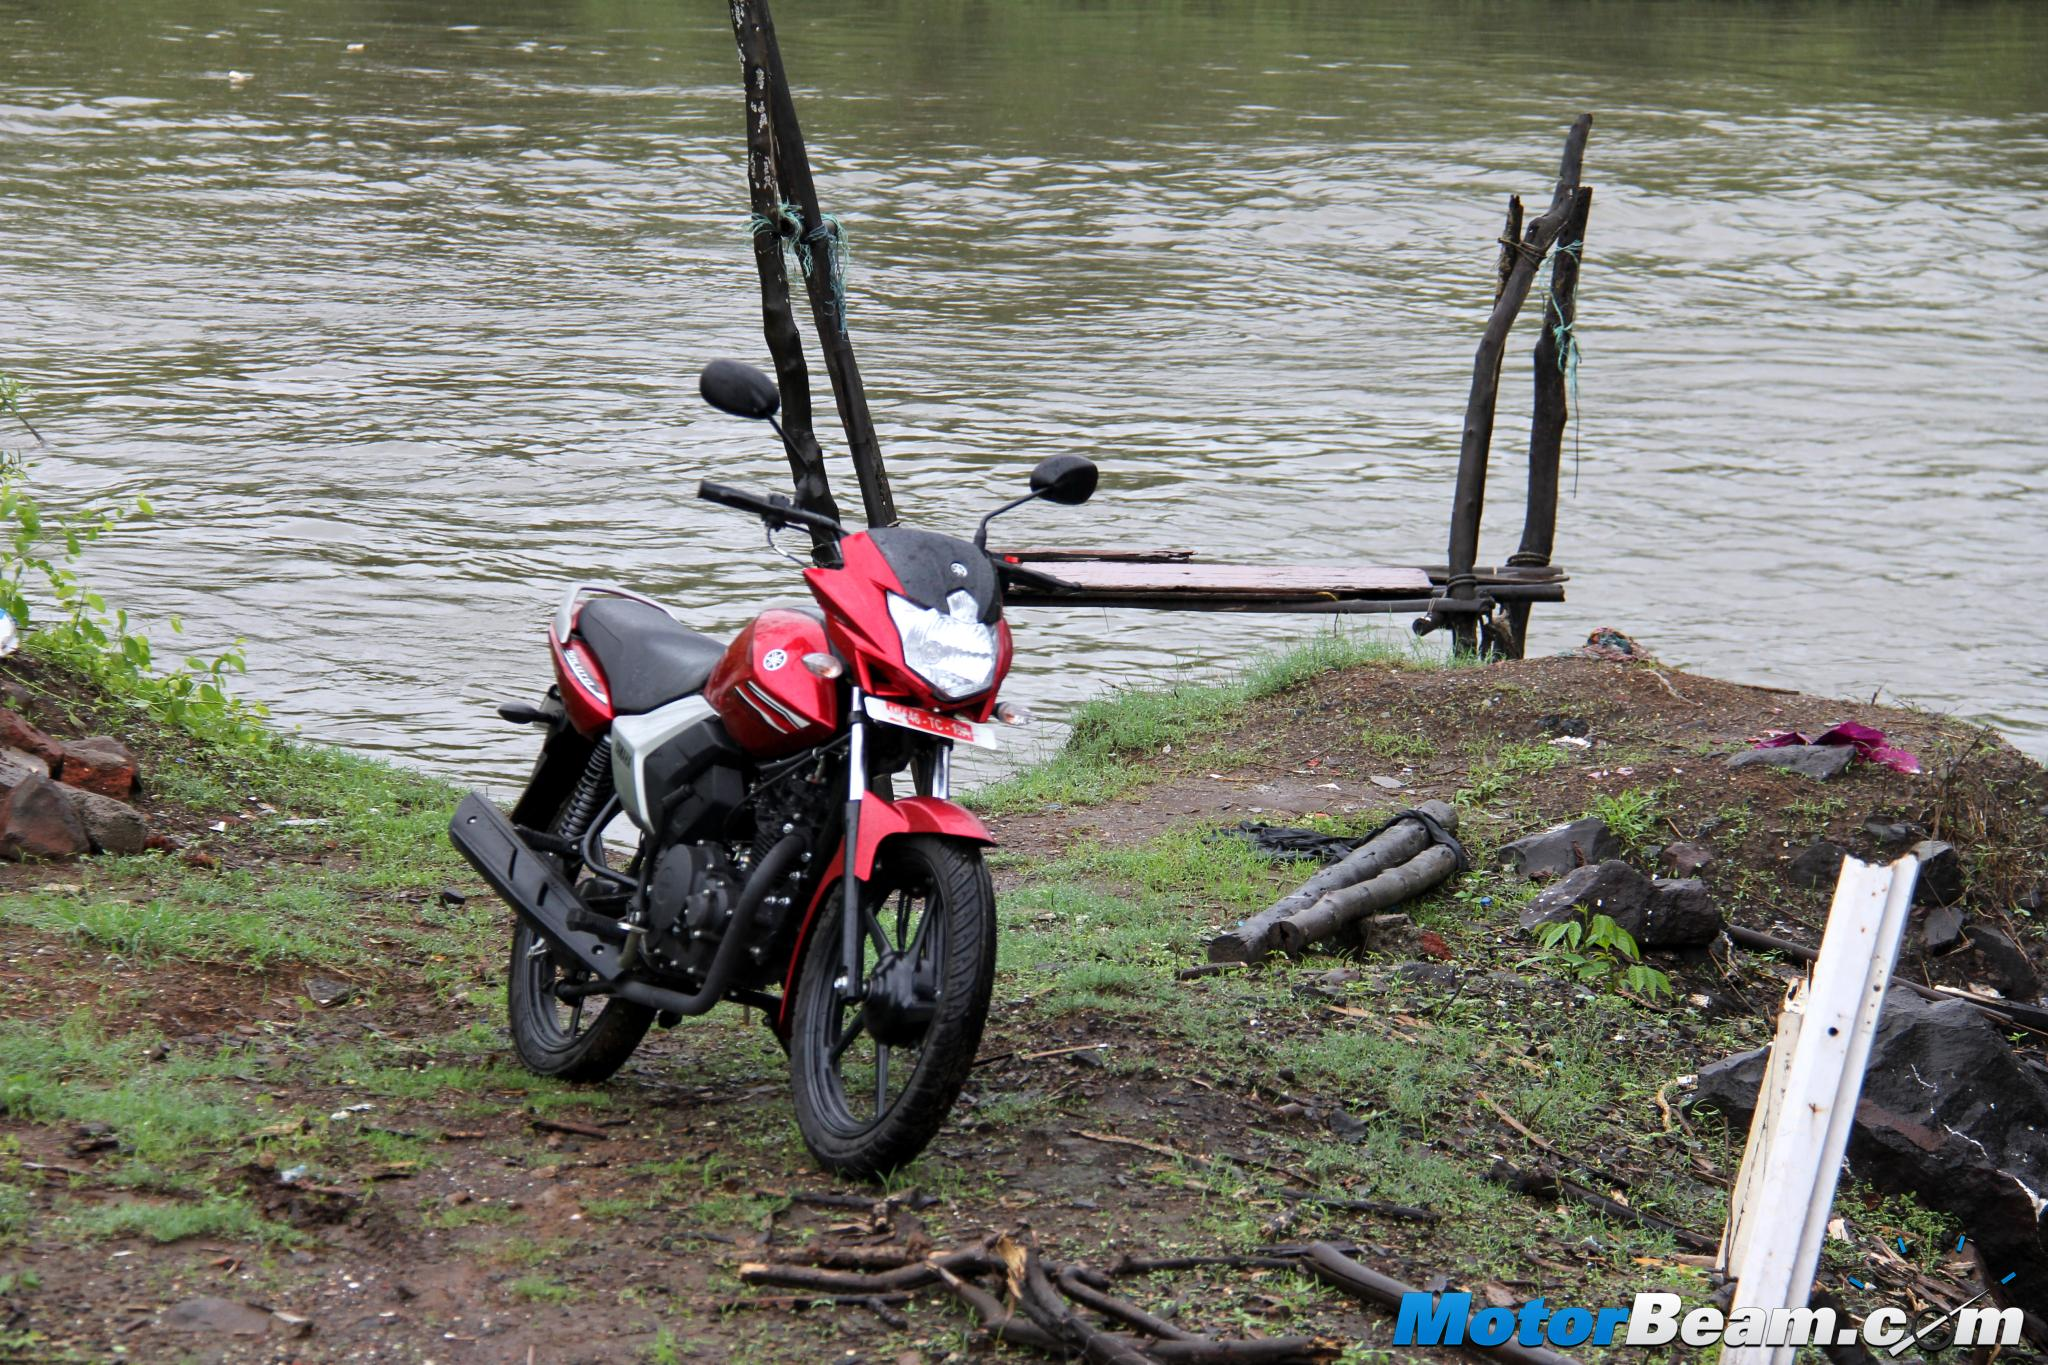 2015 Yamaha Saluto Test Ride Review